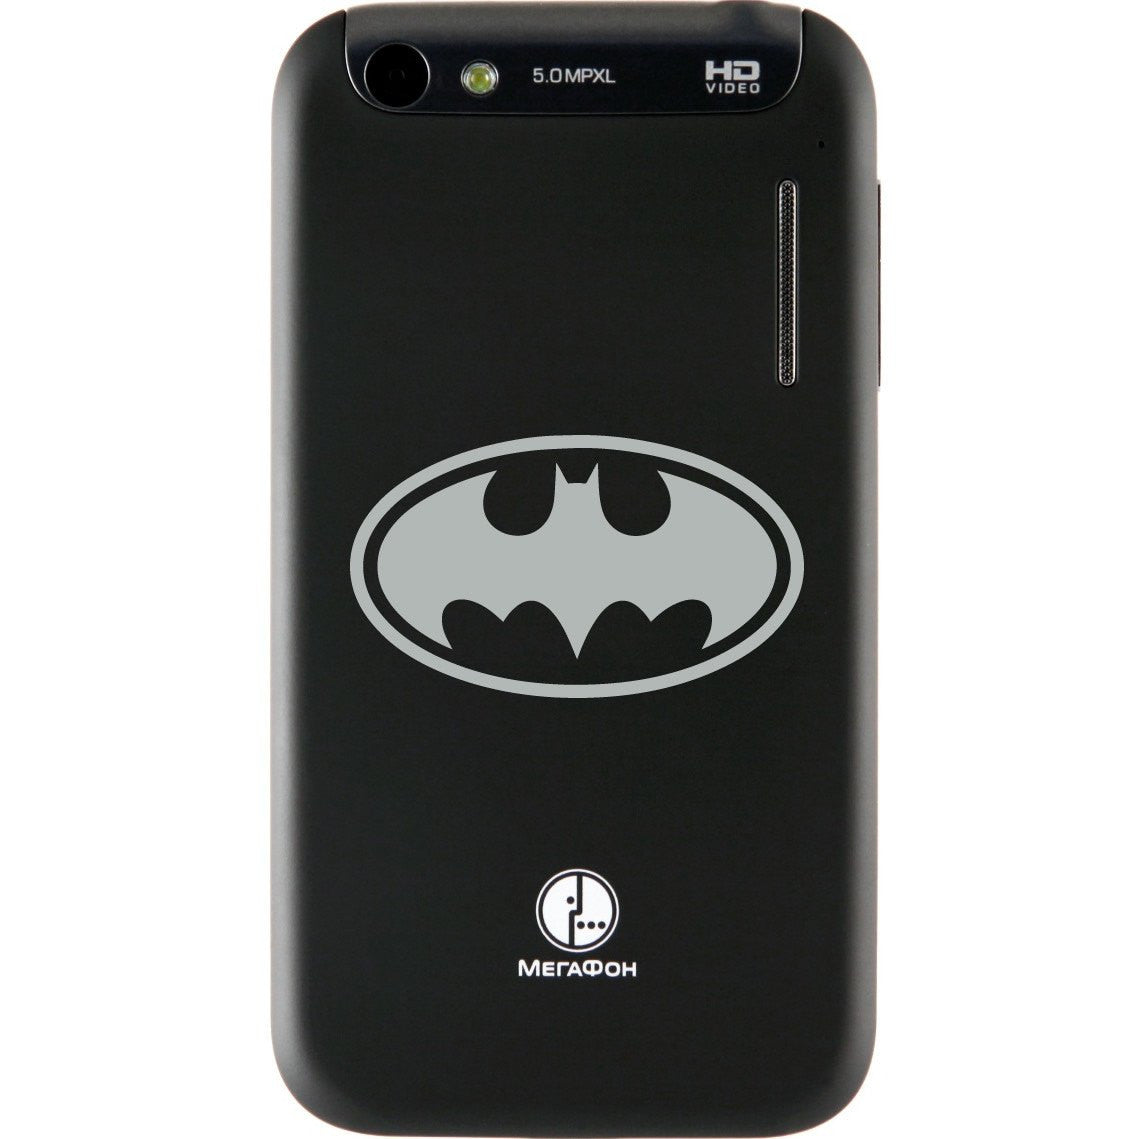 Batman Retro Superhero Logo Bumper/Phone/Laptop Sticker (AS11017) - Apex Stickers